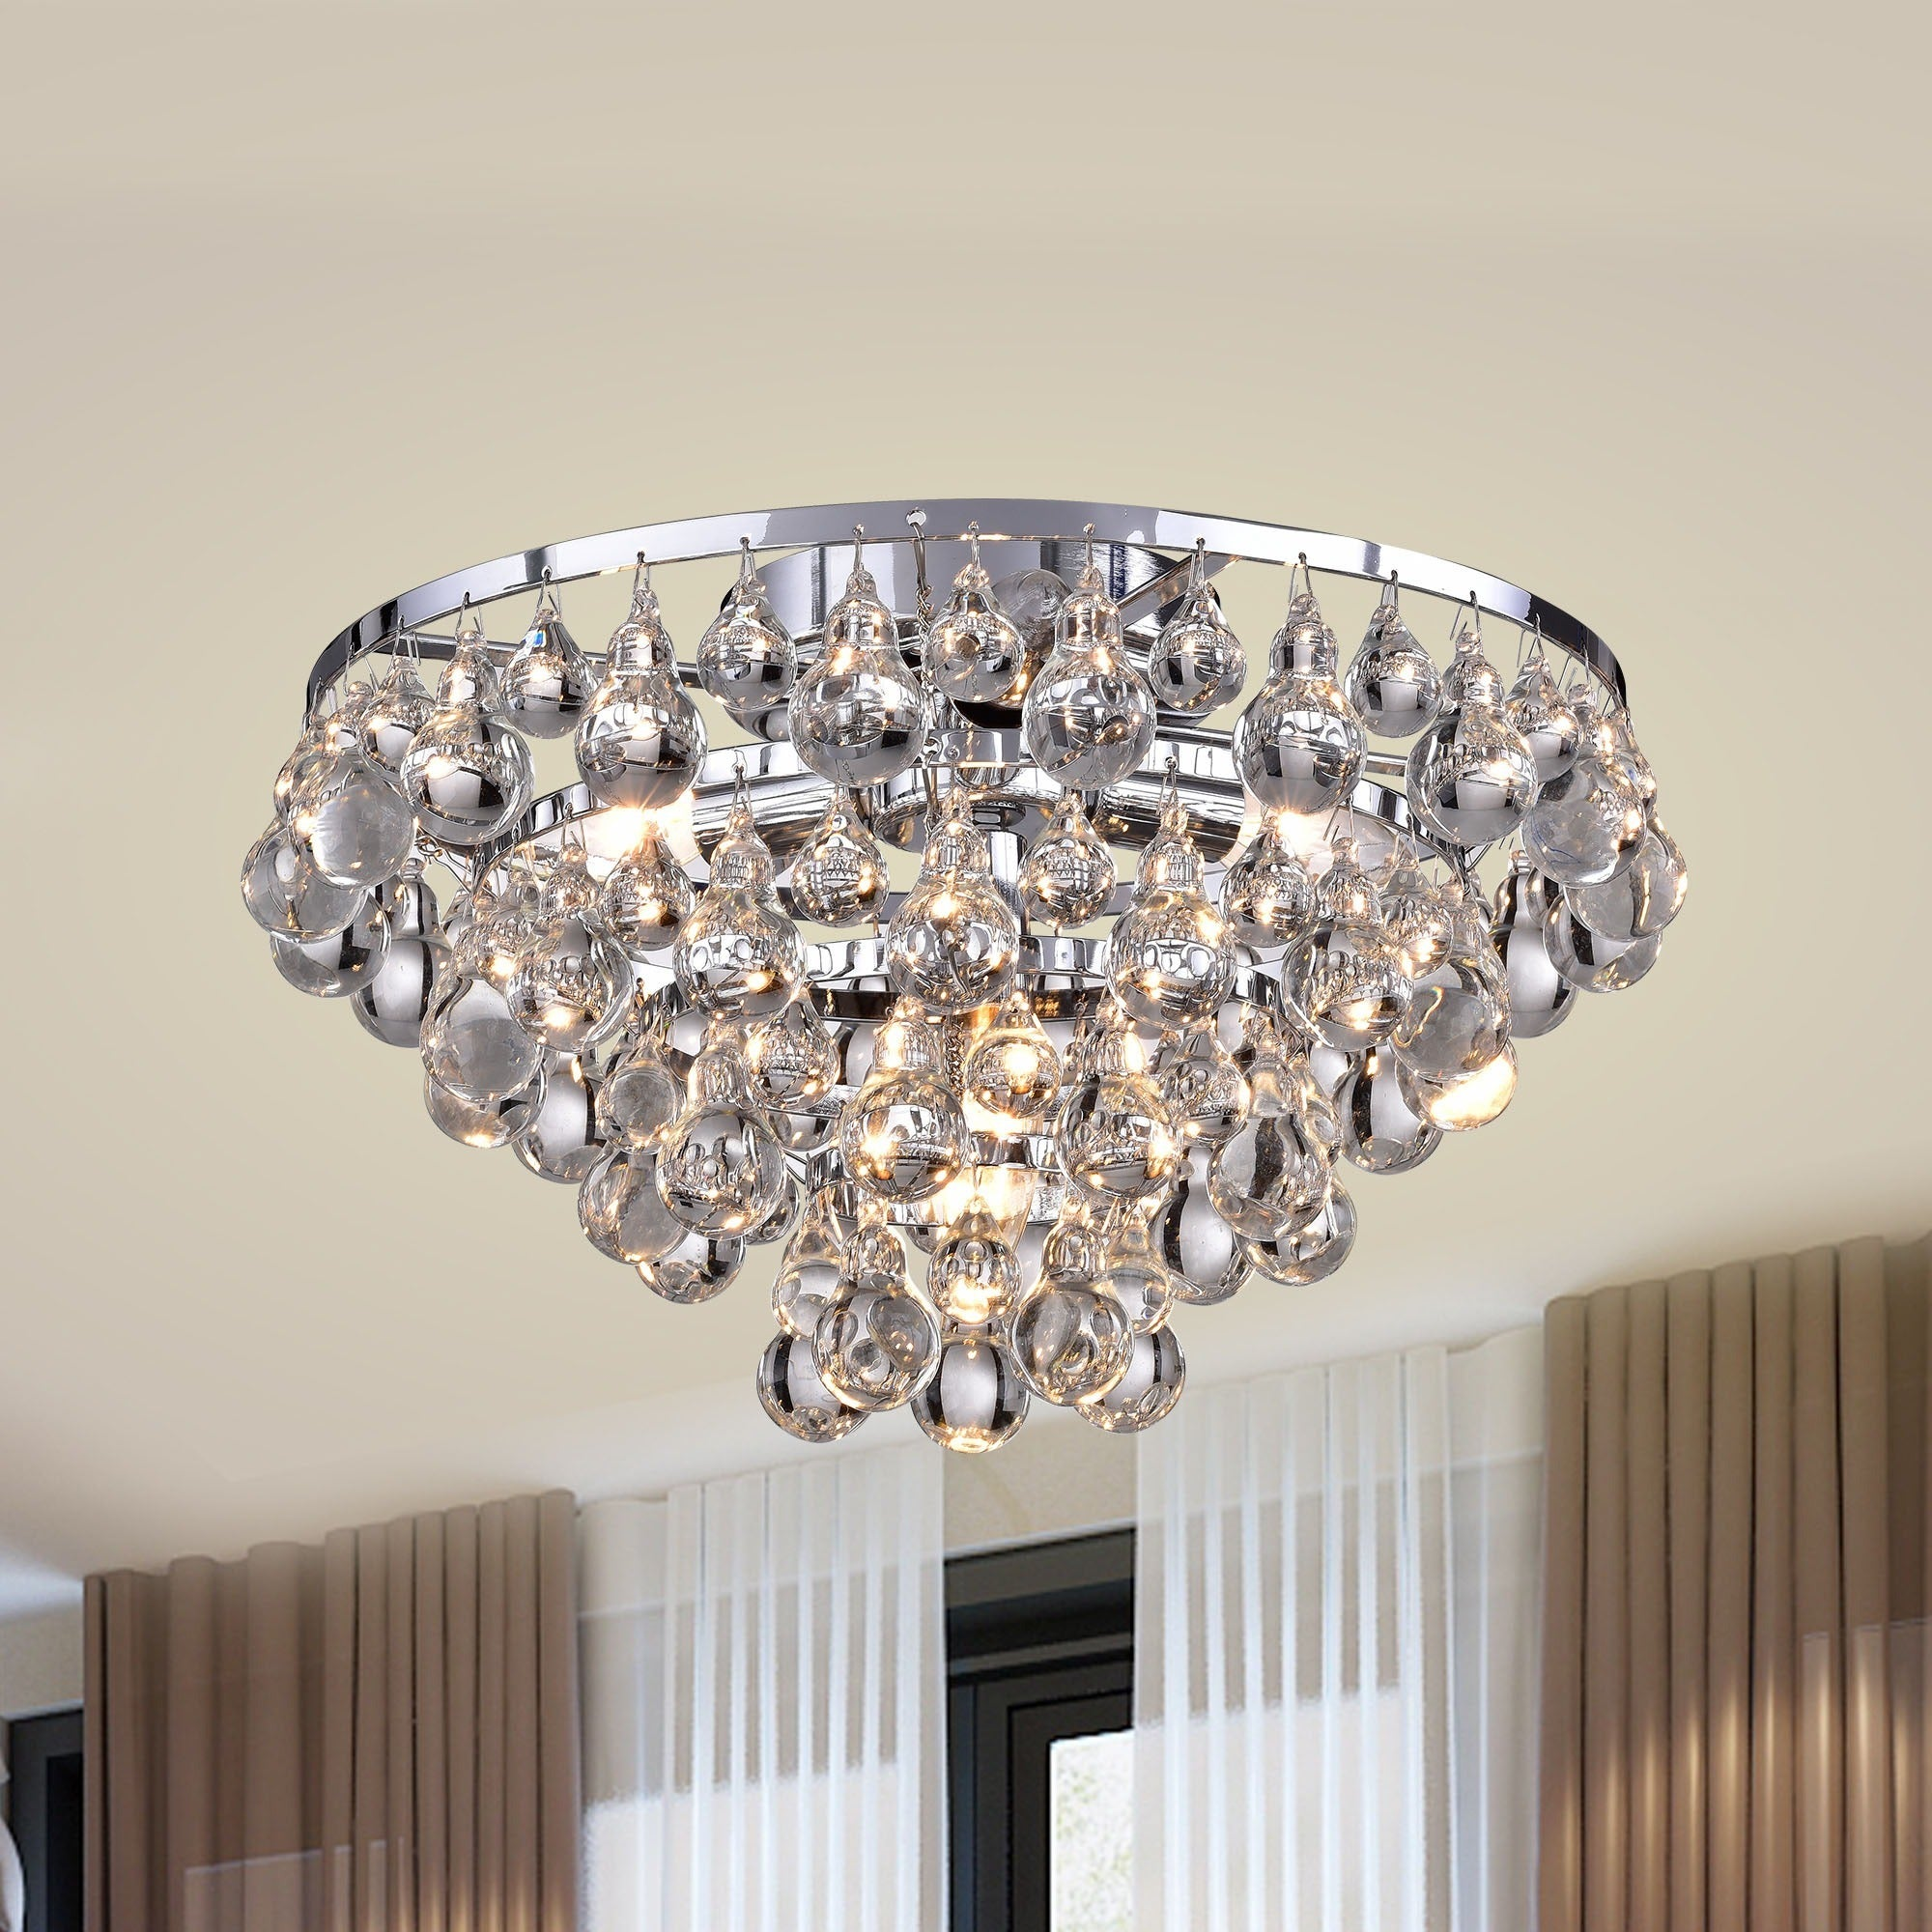 Tranquil Crystal Bubble And Chrome Flush Mount Chandelier Free Shipping Today 7538664